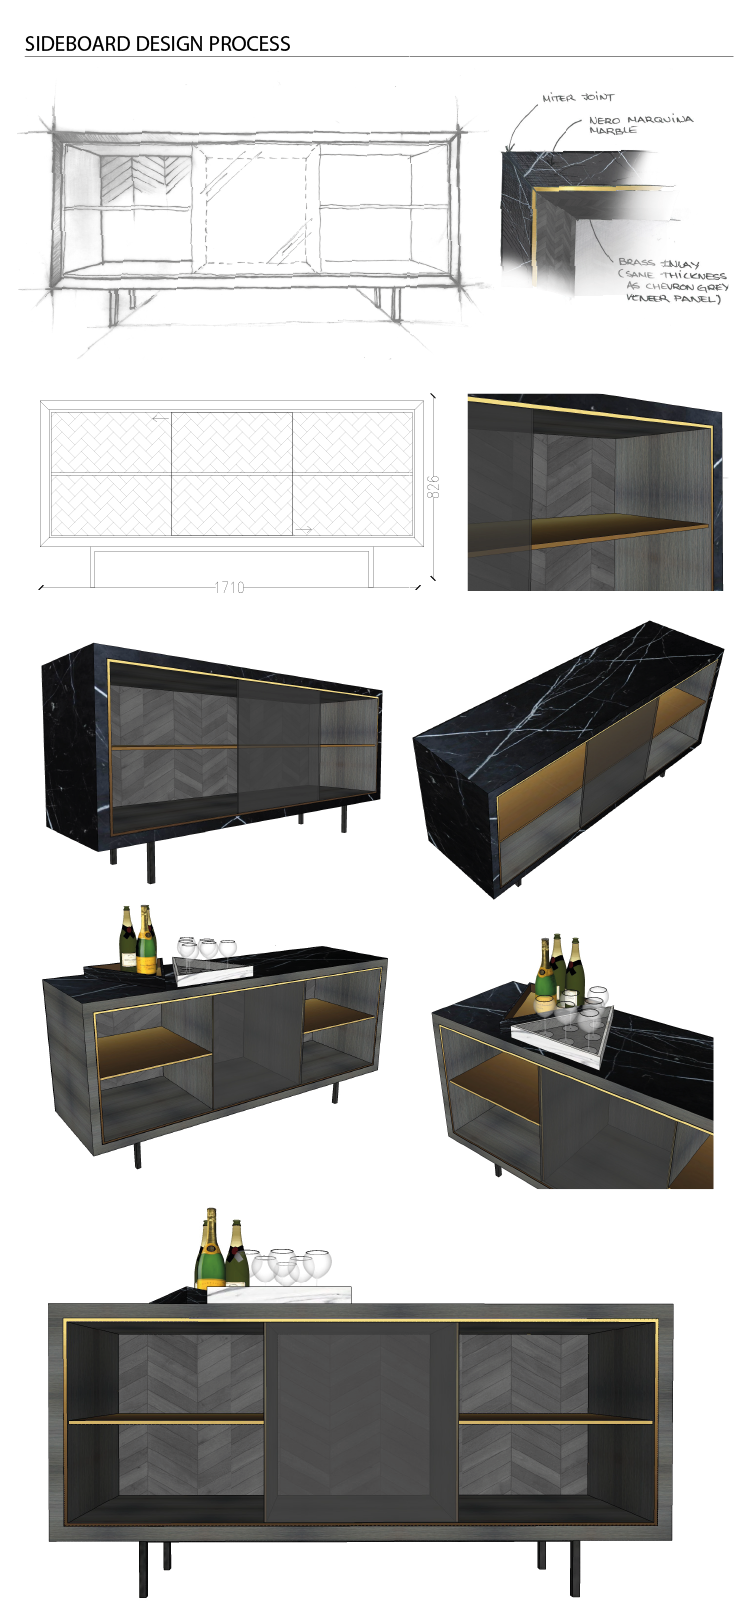 Winning Collection of the Bespoke By Decca project by Landmass London